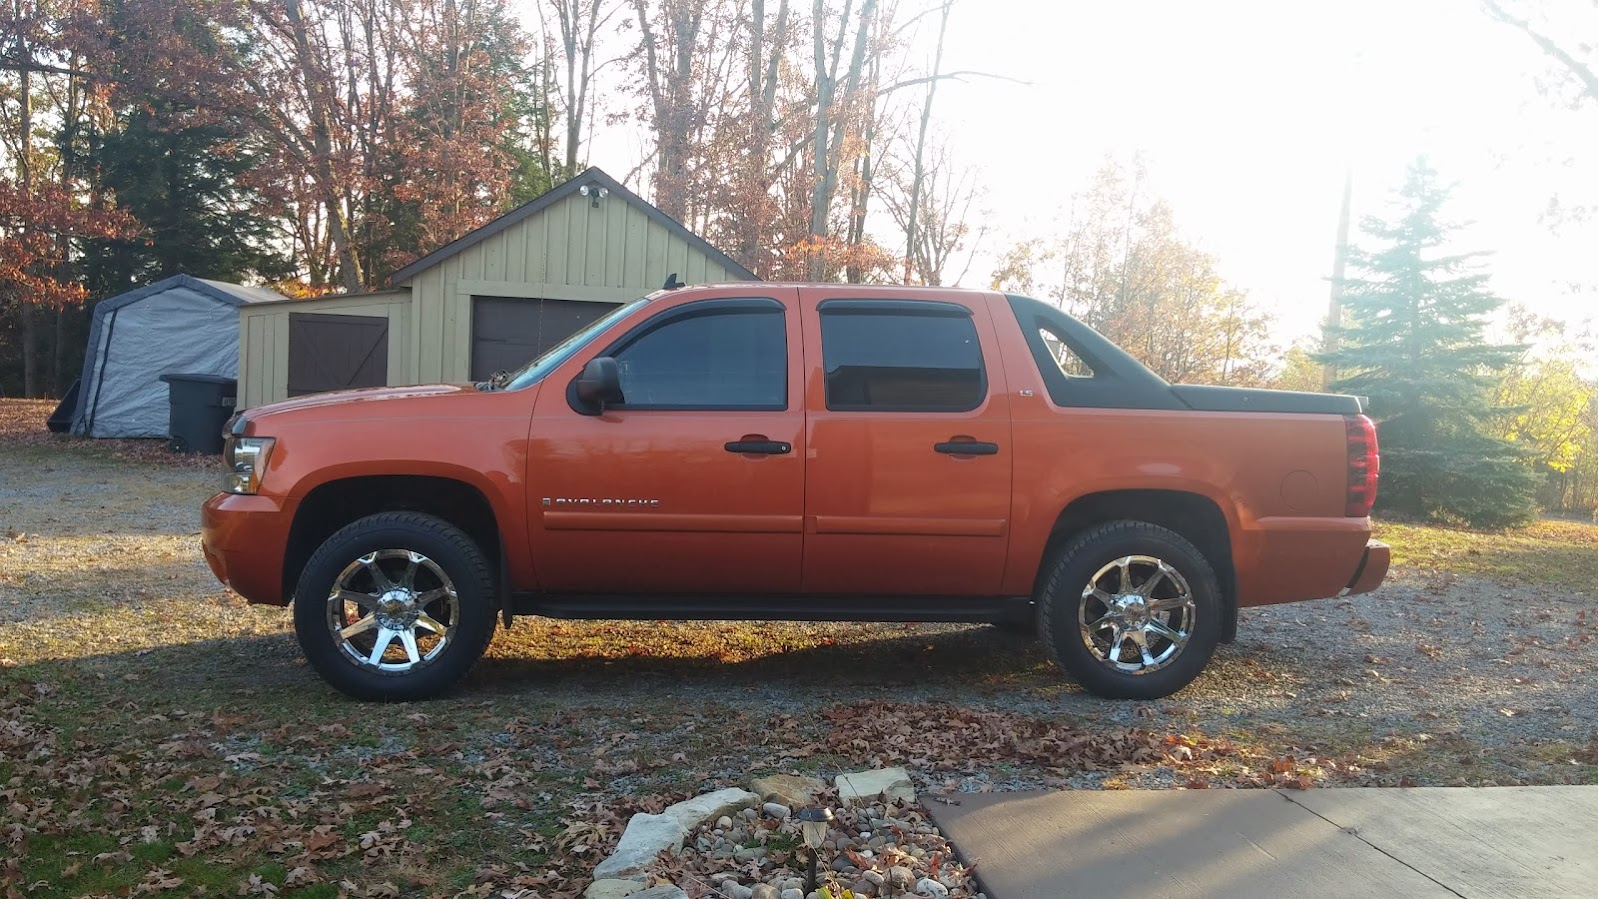 Avalanche 2002 chevy avalanche lift kit : 08 Avalanche with Level Kit, 20